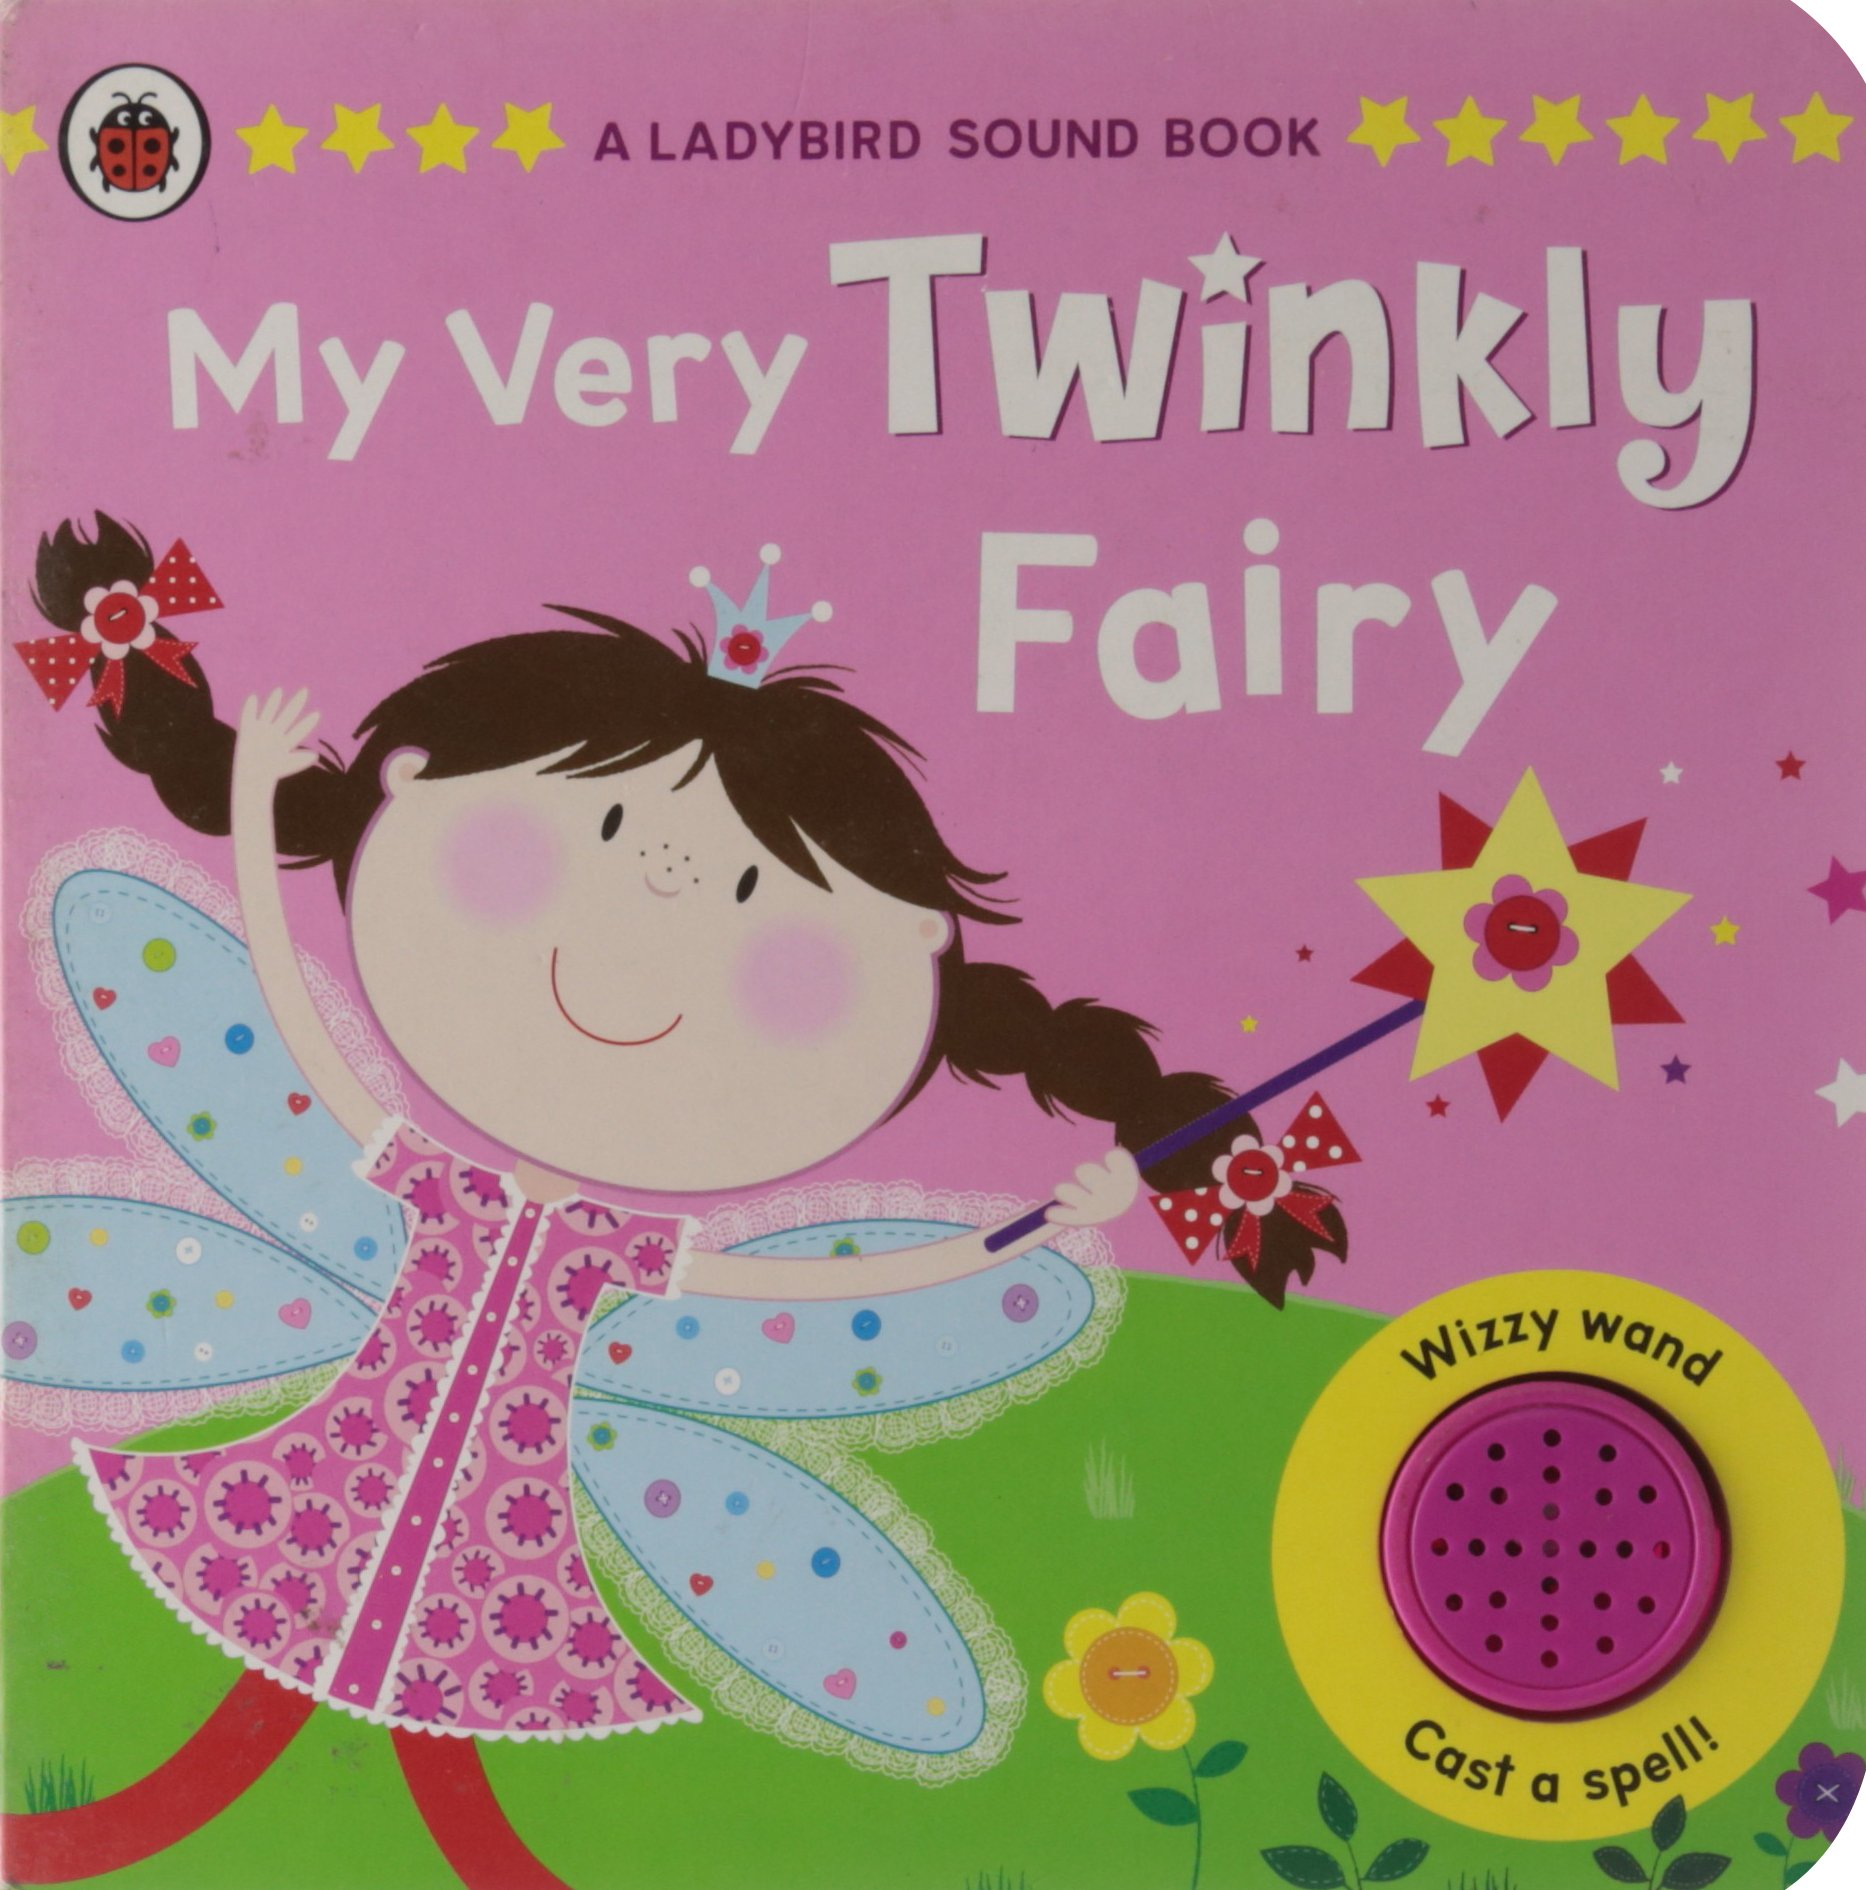 A Ladybird Sound Book My Very Twinkly Fairy